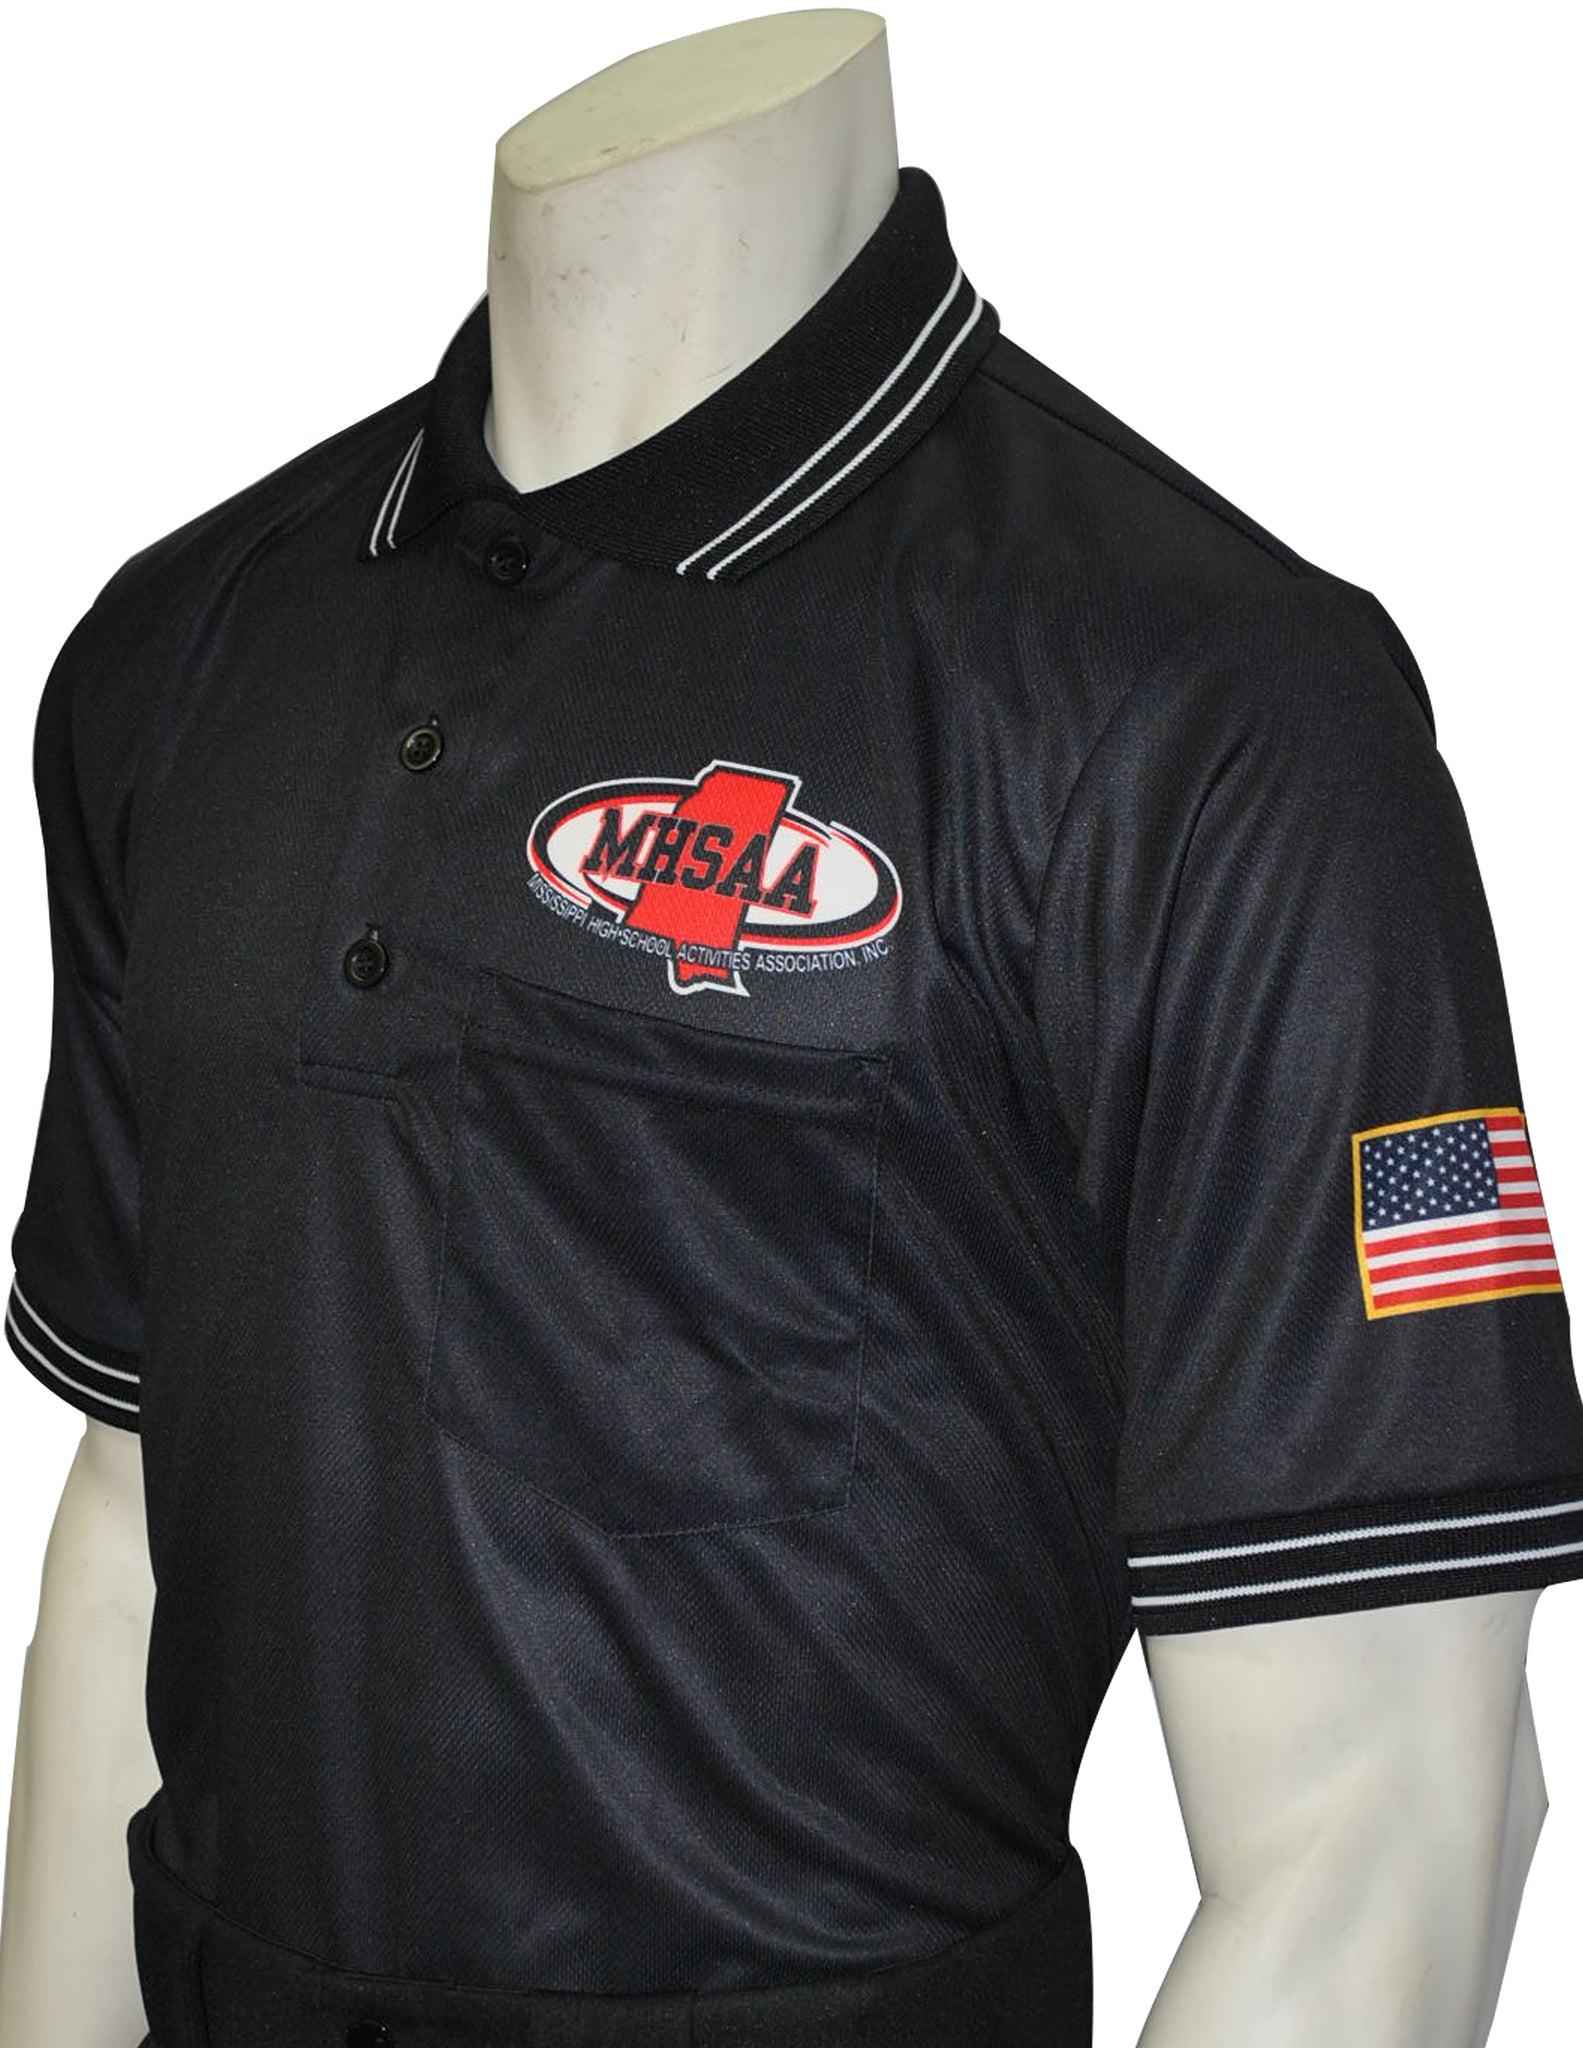 "USA300MS - Smitty ""Made in USA"" - Mississippi Baseball Short Sleeve Shirt Black"